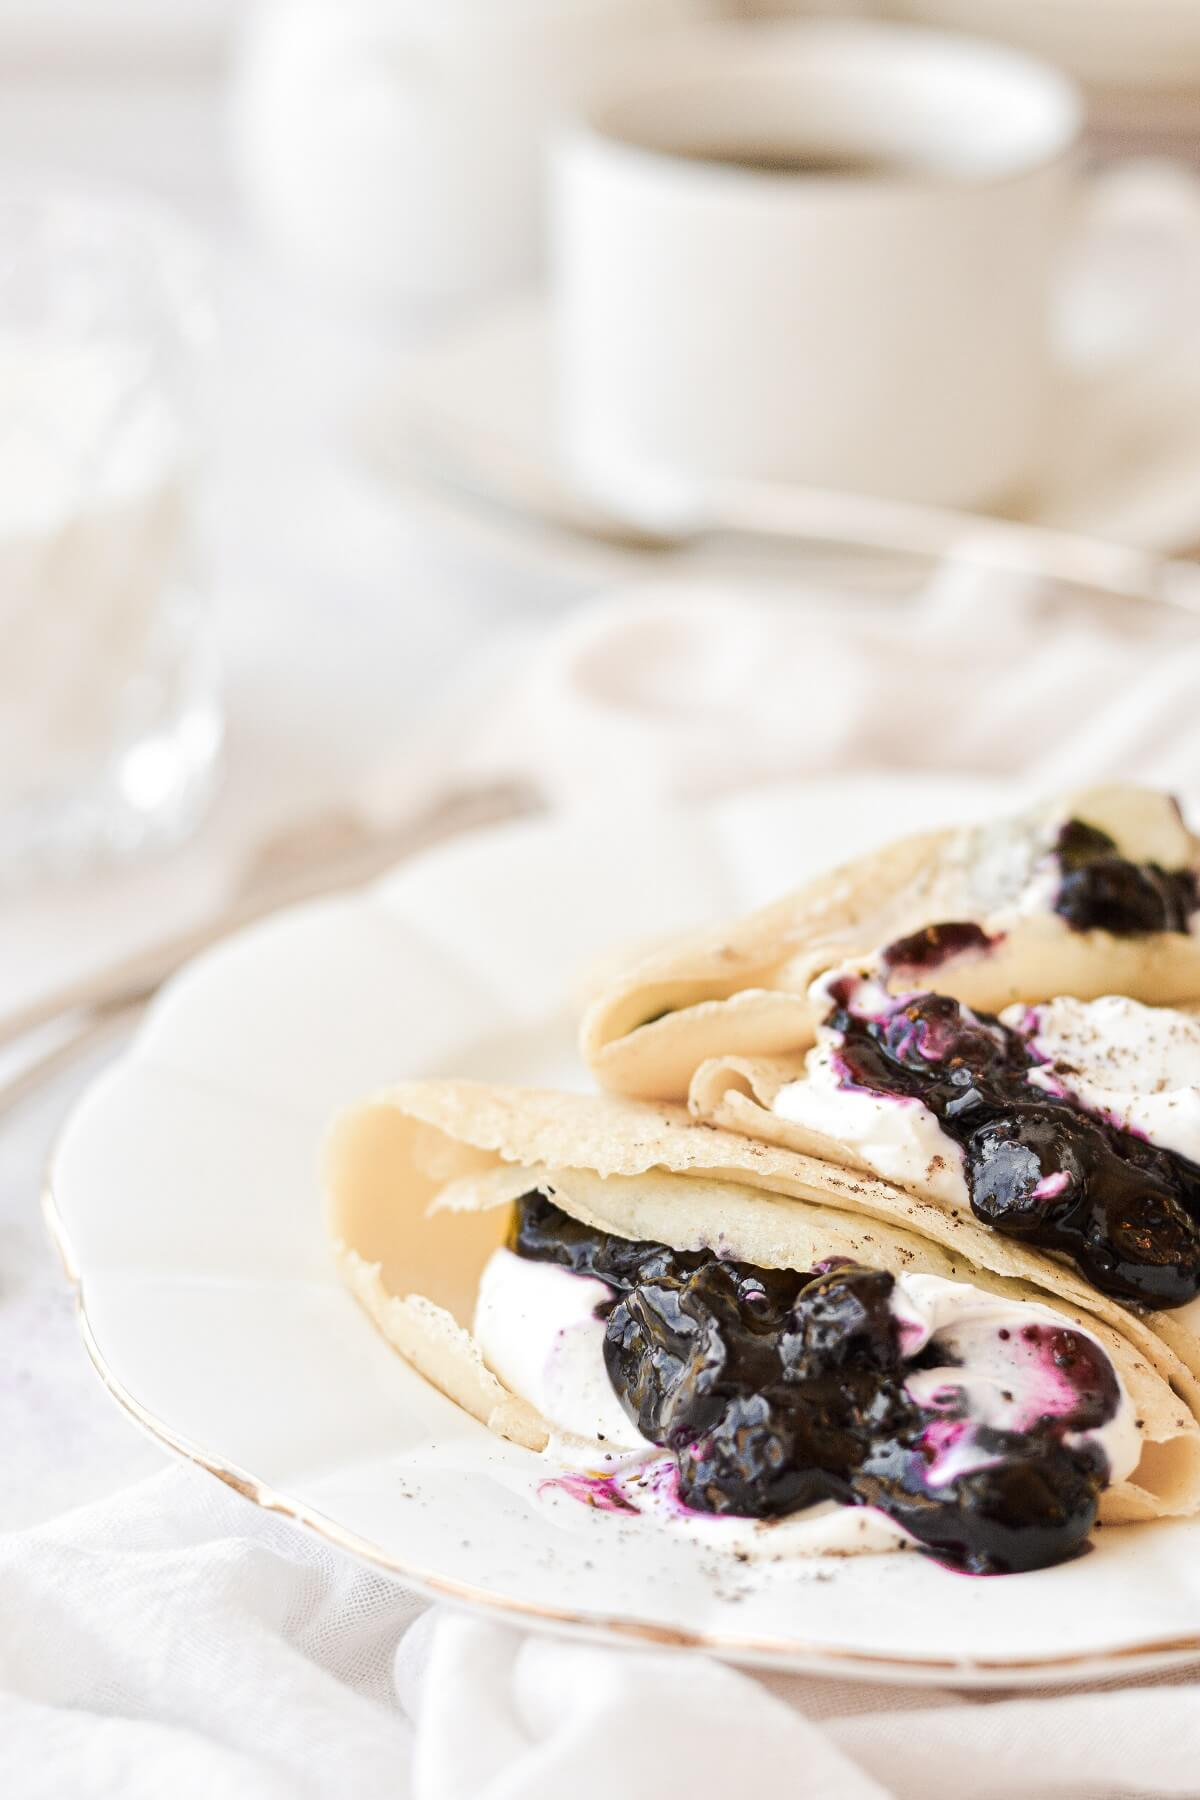 Crepes filled with whipped cream cheese and blueberry compote.